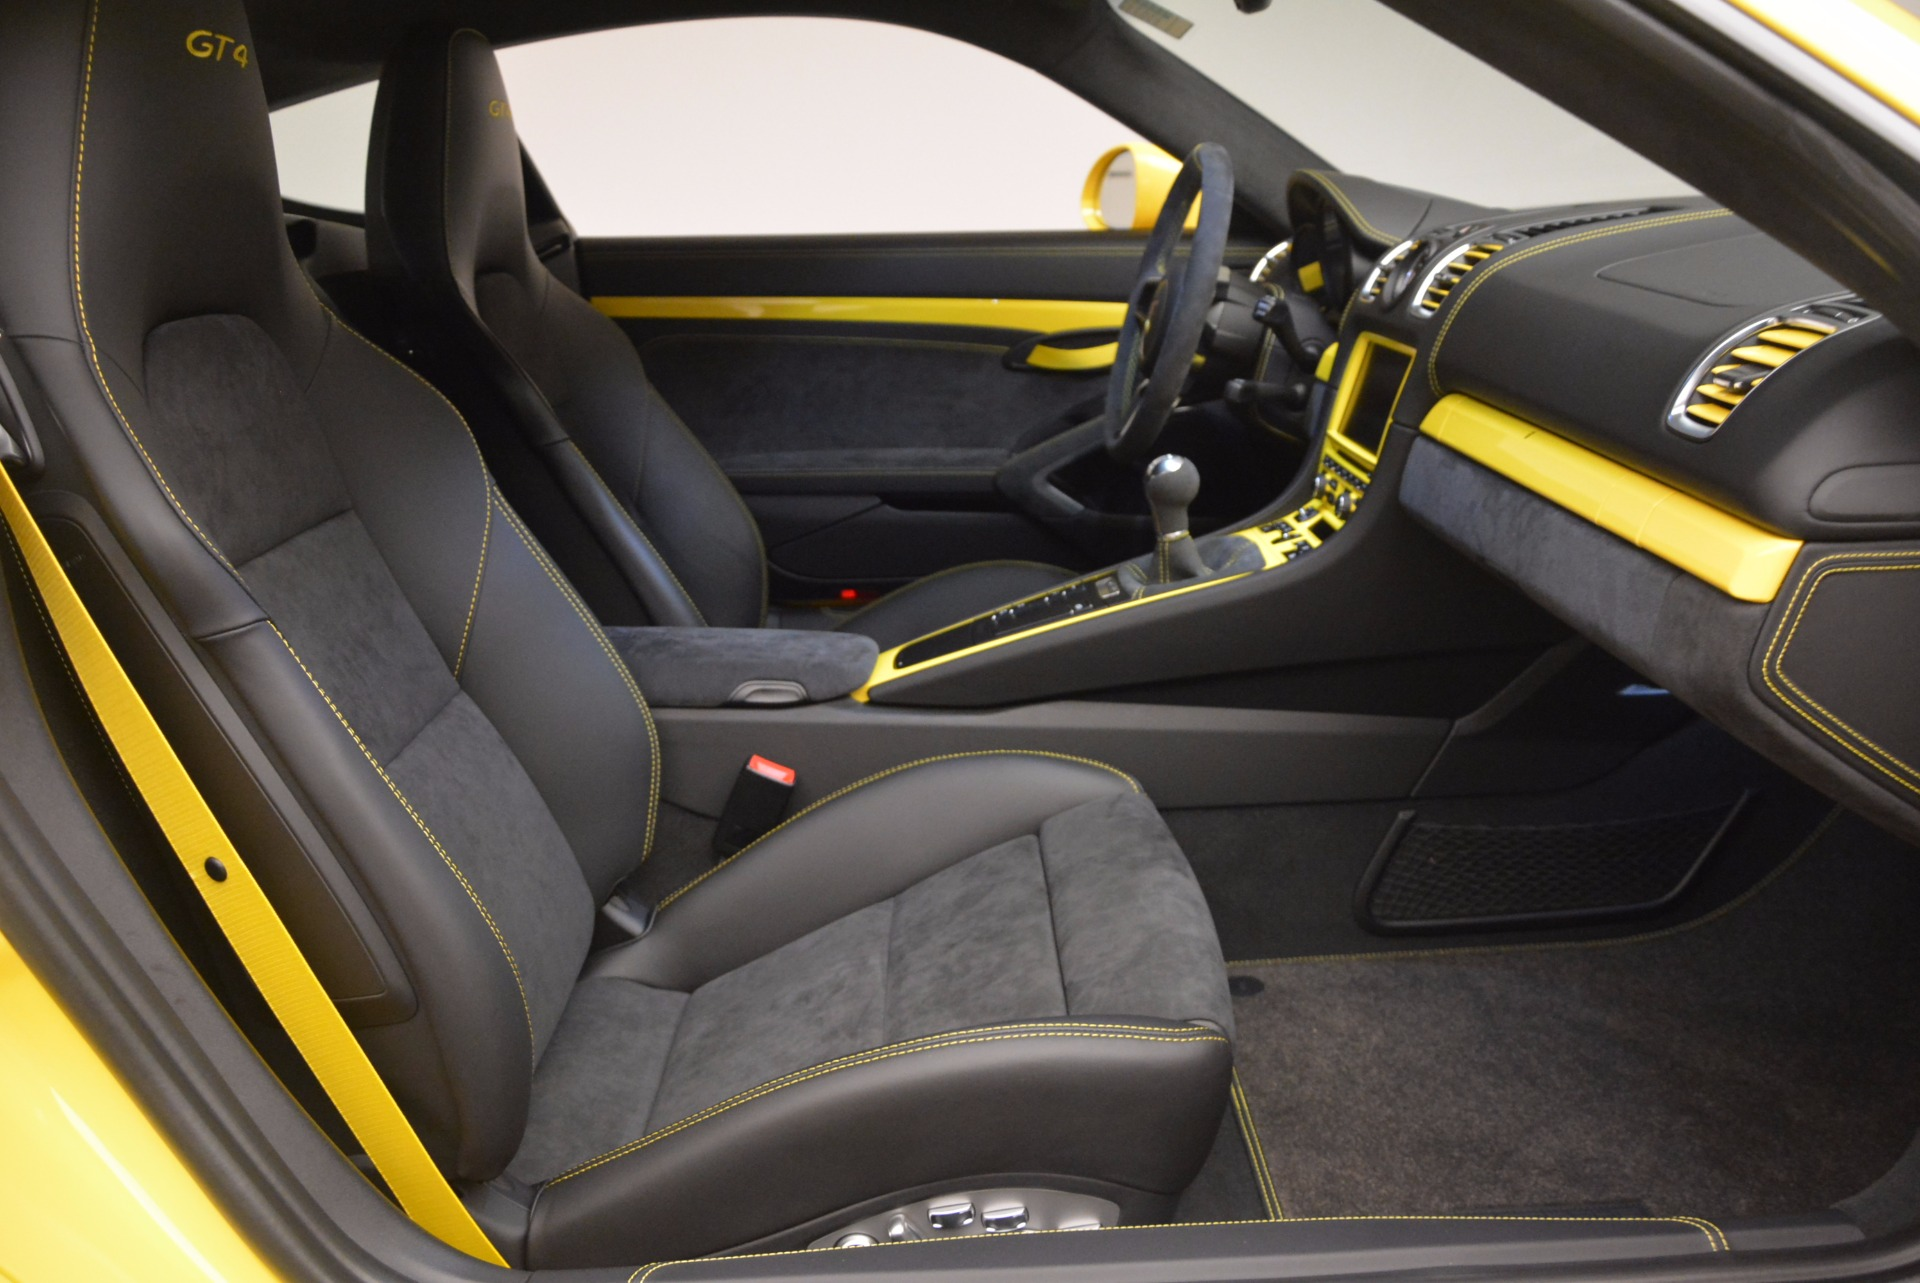 Used 2016 Porsche Cayman GT4 For Sale In Greenwich, CT 1401_p18